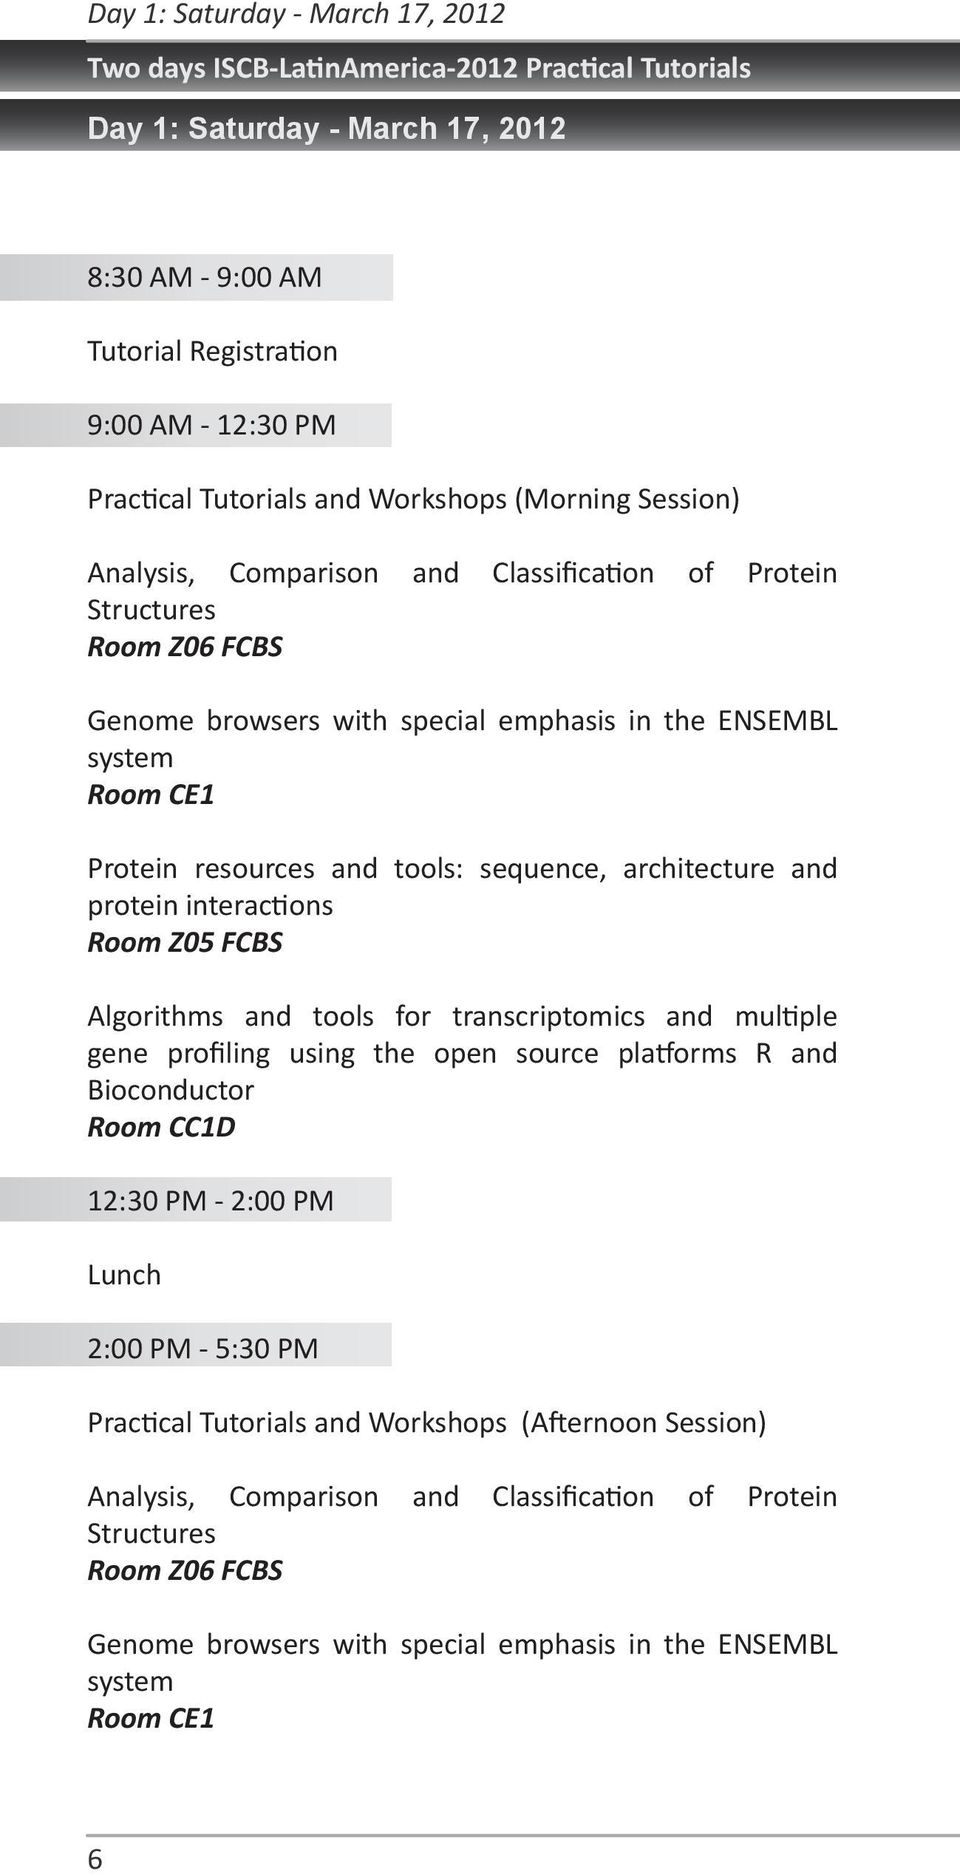 tools: sequence, architecture and protein interactions Room Z05 FCBS Algorithms and tools for transcriptomics and multiple gene profiling using the open source platforms R and Bioconductor Room CC1D